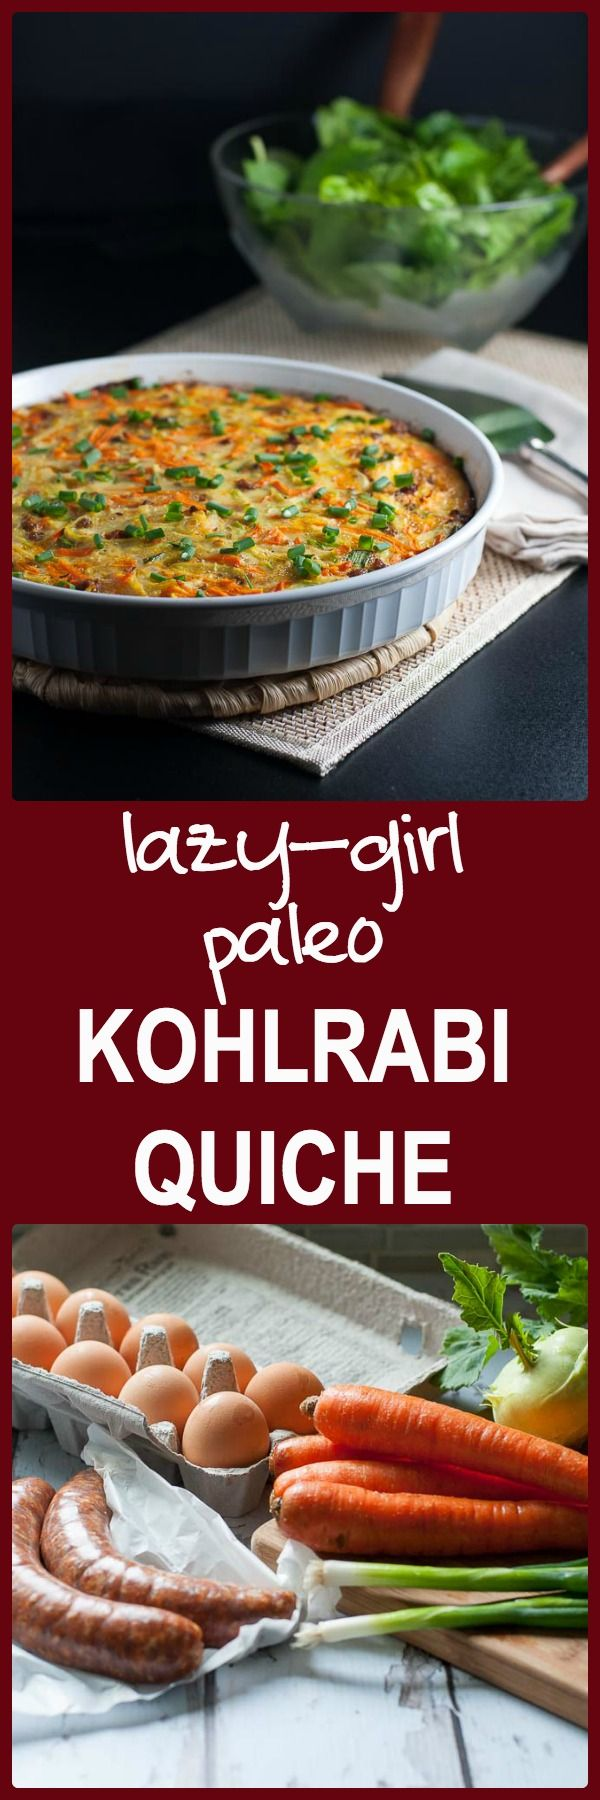 Paleo Kohlrabi Quiche. Quick and easy weeknight meal for those nights when you don't feel like cooking! Packed with protein and healthy vegetables.